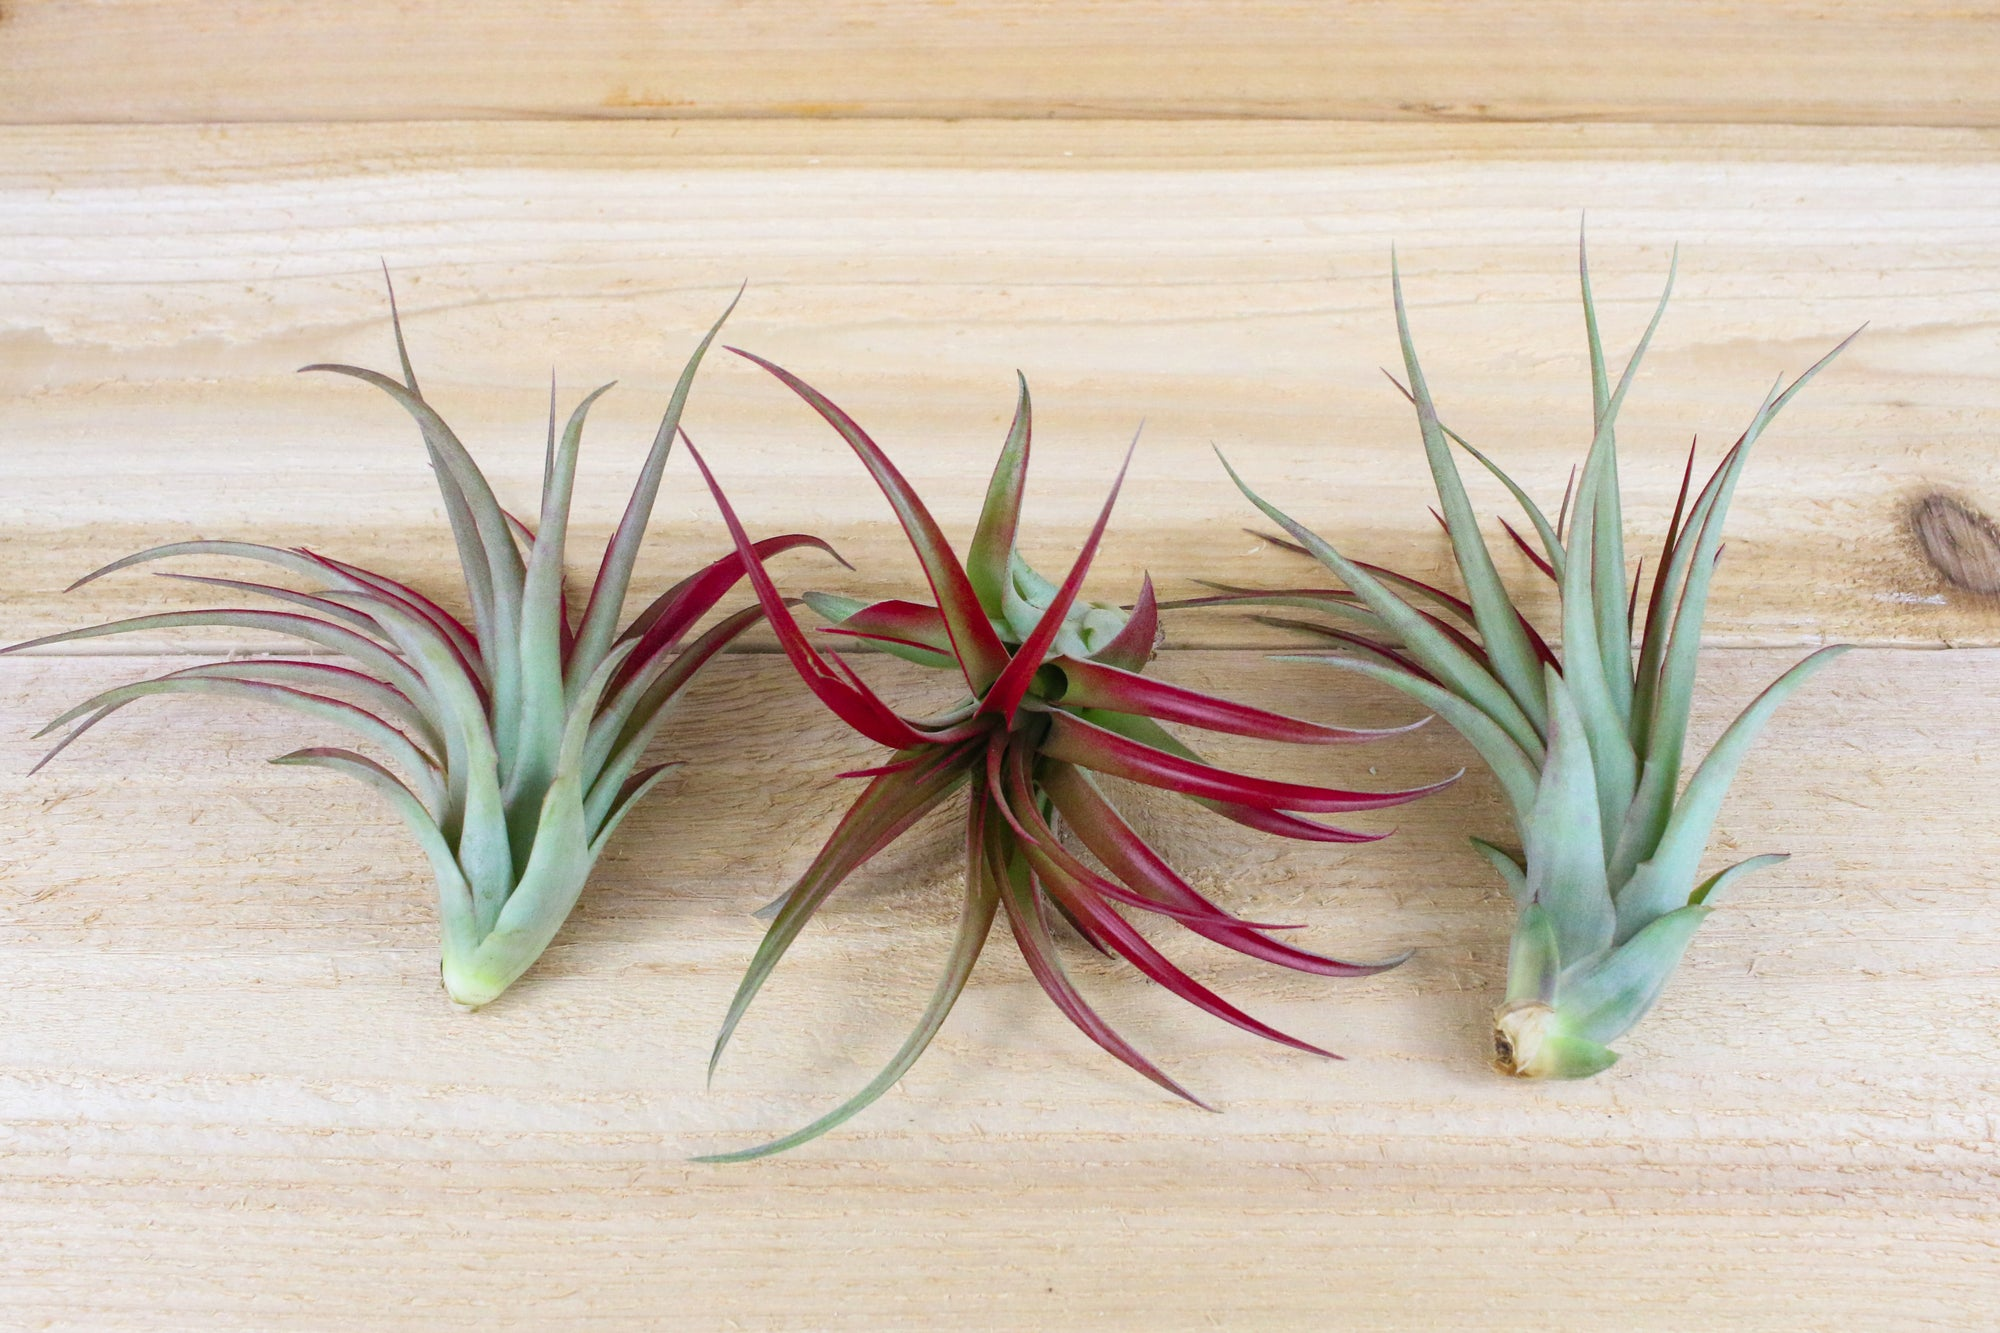 Wholesale: Large Tillandsia Red Abdita Air Plants / 5-7 Inches Tall [Min Order 12] from AirPlantShop.com